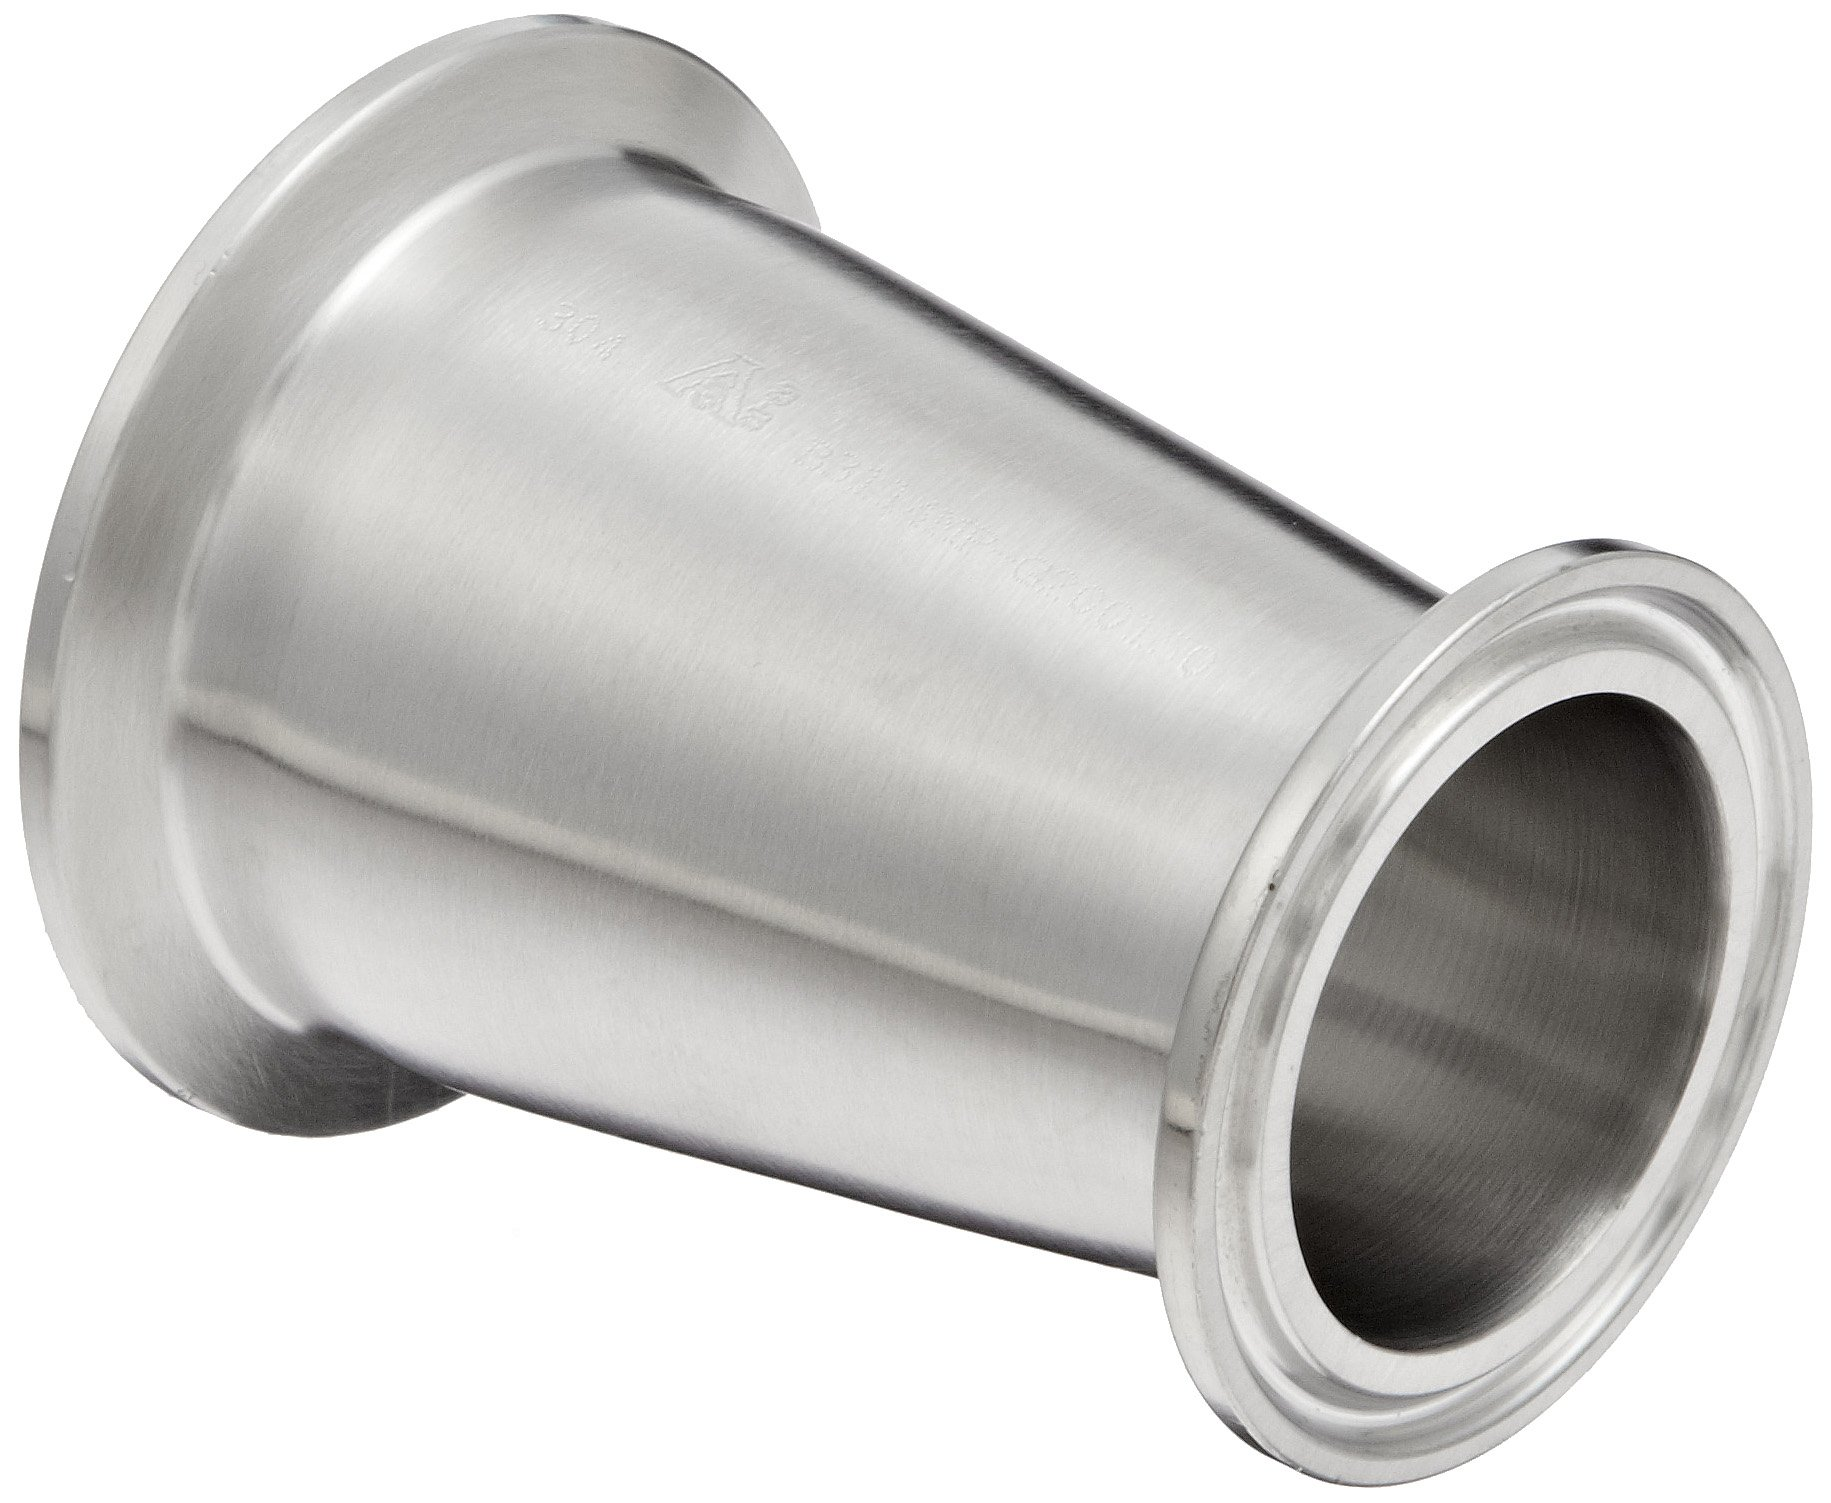 Dixon B3114MP-G200150 Stainless Steel 304 Sanitary Fitting, Clamp Concentric Red Fiberglassucer, 2'' Tube OD x 1-1/2'' Tube OD